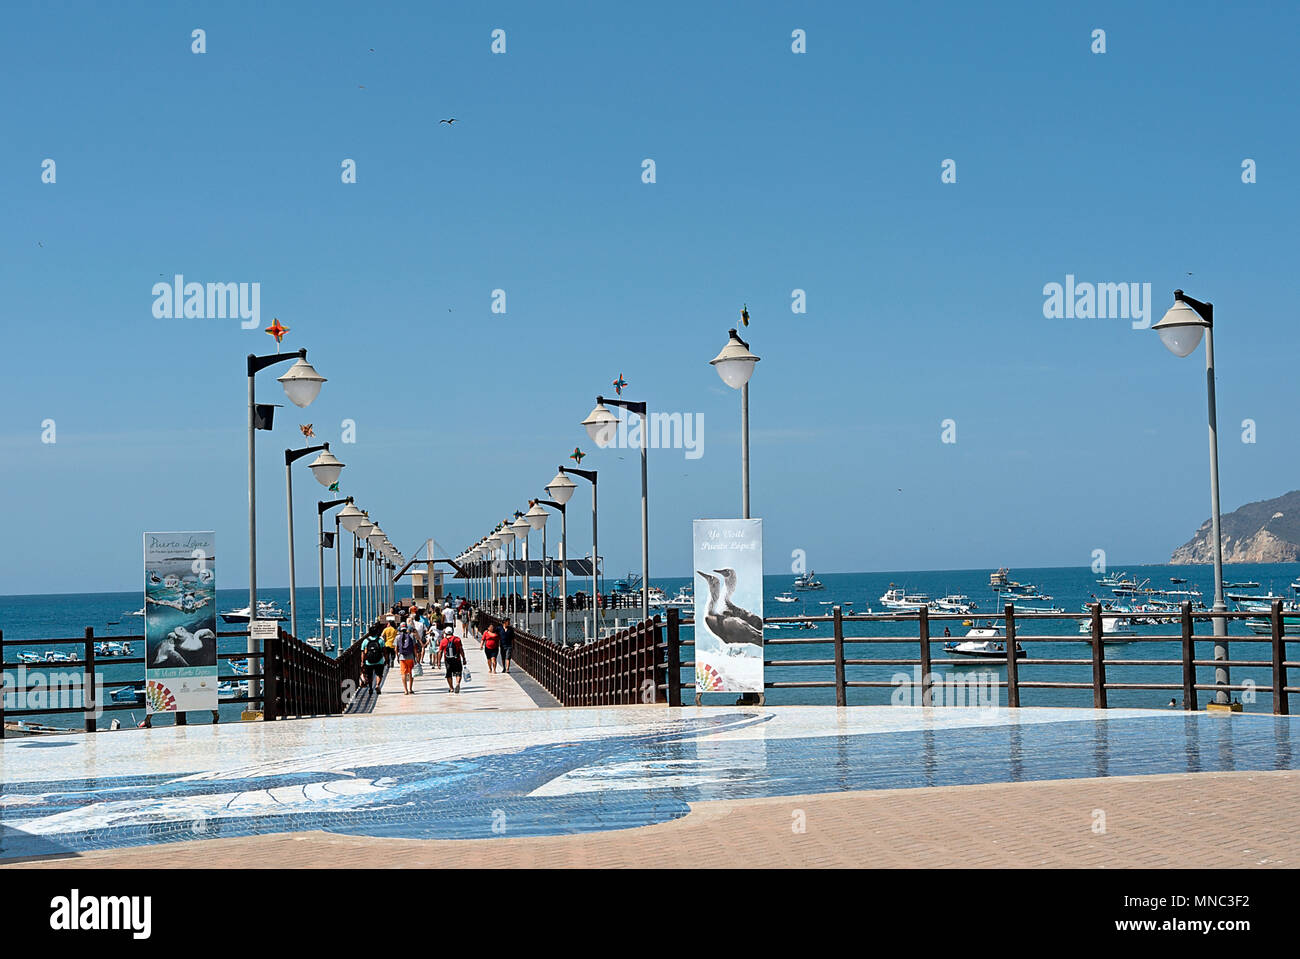 Dock with people ready to embark - Stock Image